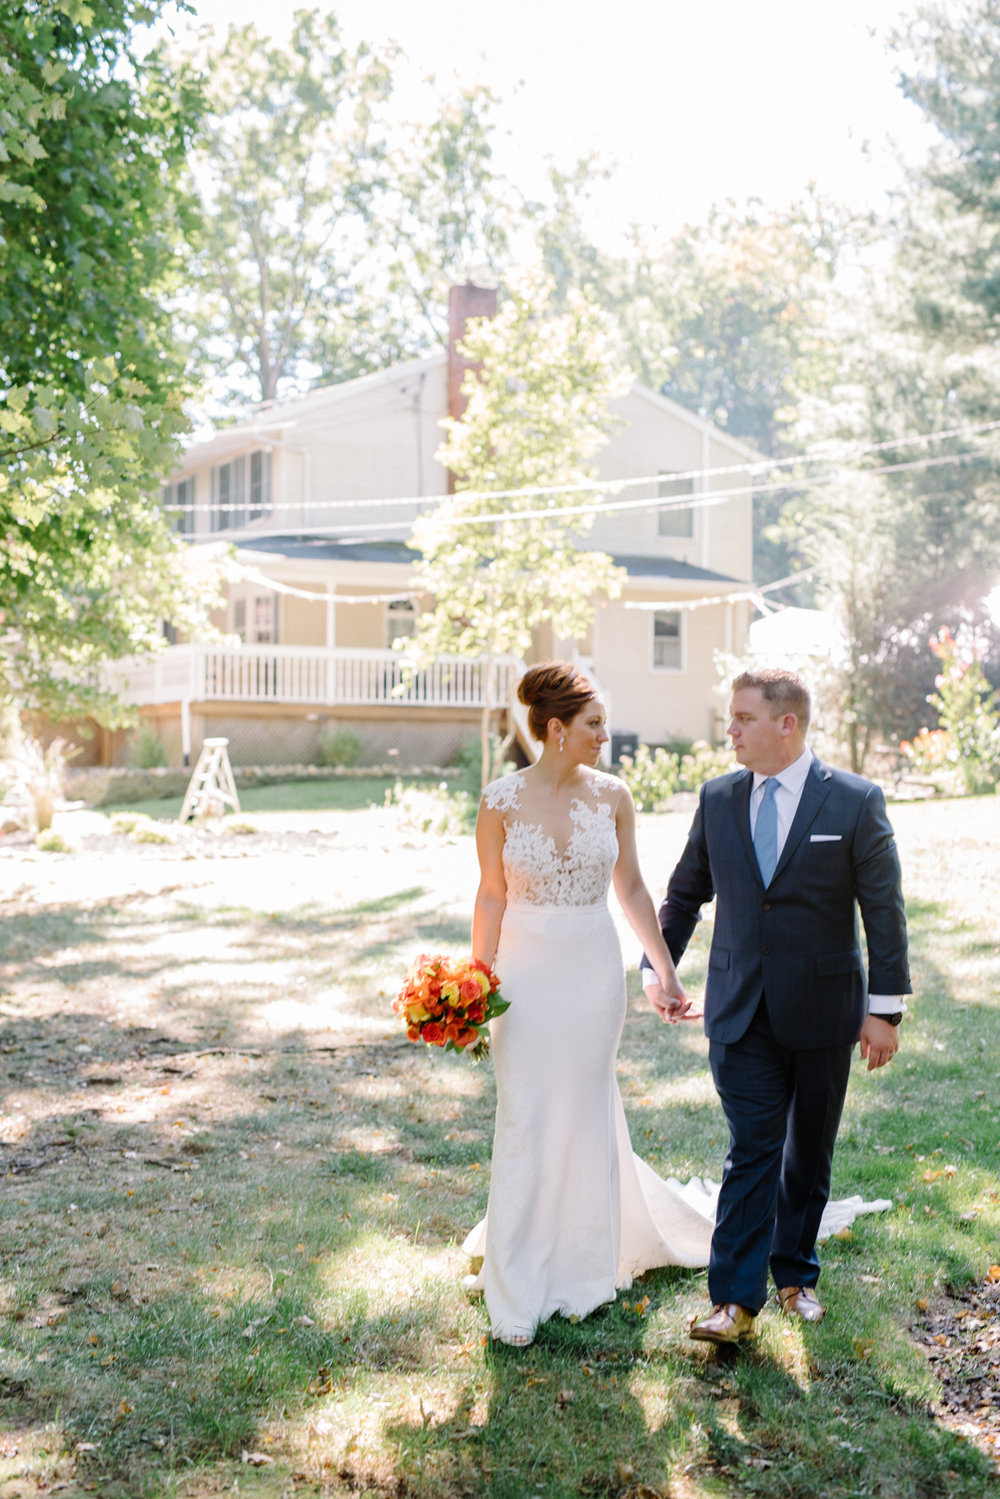 Lauren+AJ- DIY Backyard Wedding- New Jersey- Olivia Christina Photo-82.JPG